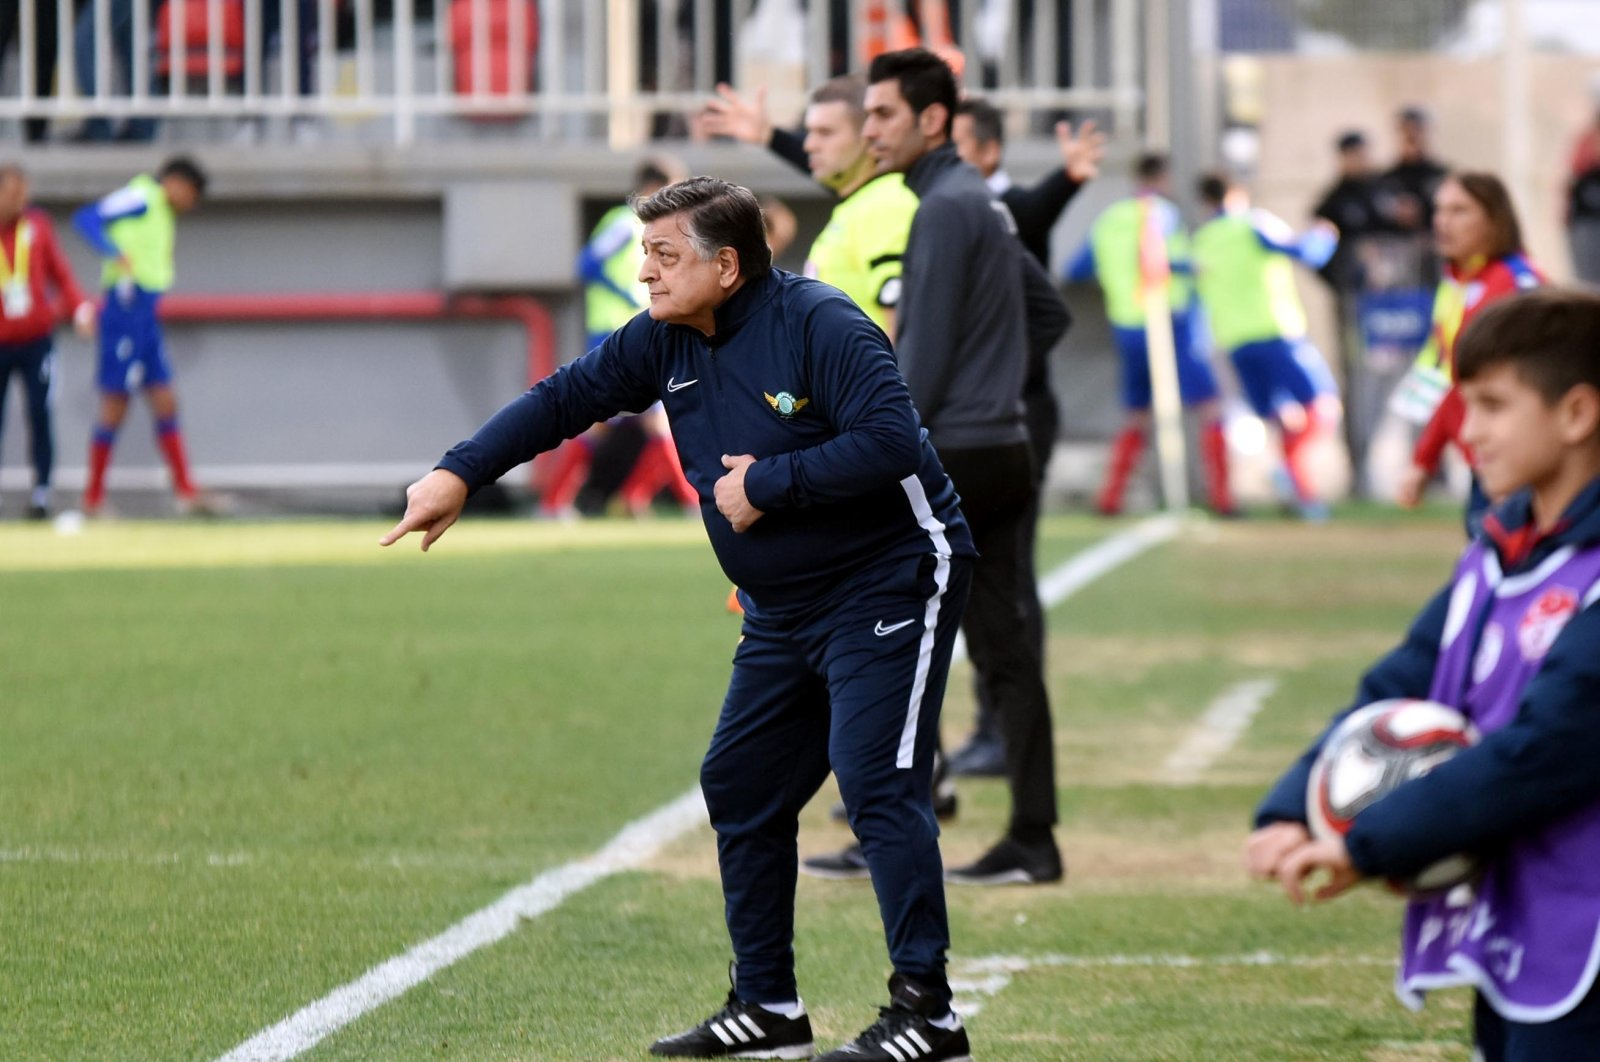 Yılmaz Vural gives directives to Akhisarspor players during a match in this undated file photo. (DHA Photo)